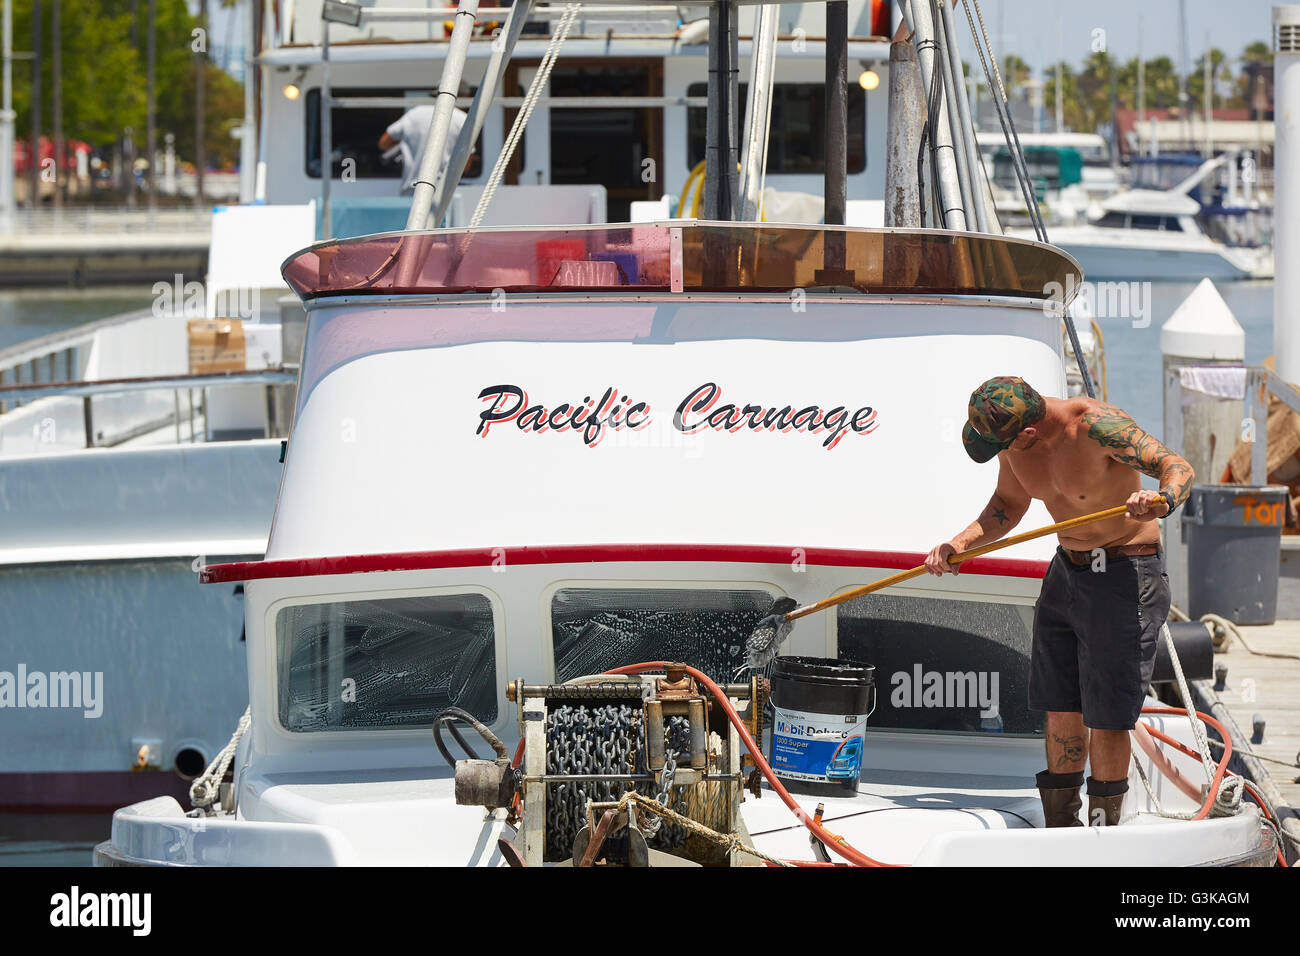 Fisherman Scrubs The Pacific Carnage In Rainbow Harbor, Long Beach. - Stock Image